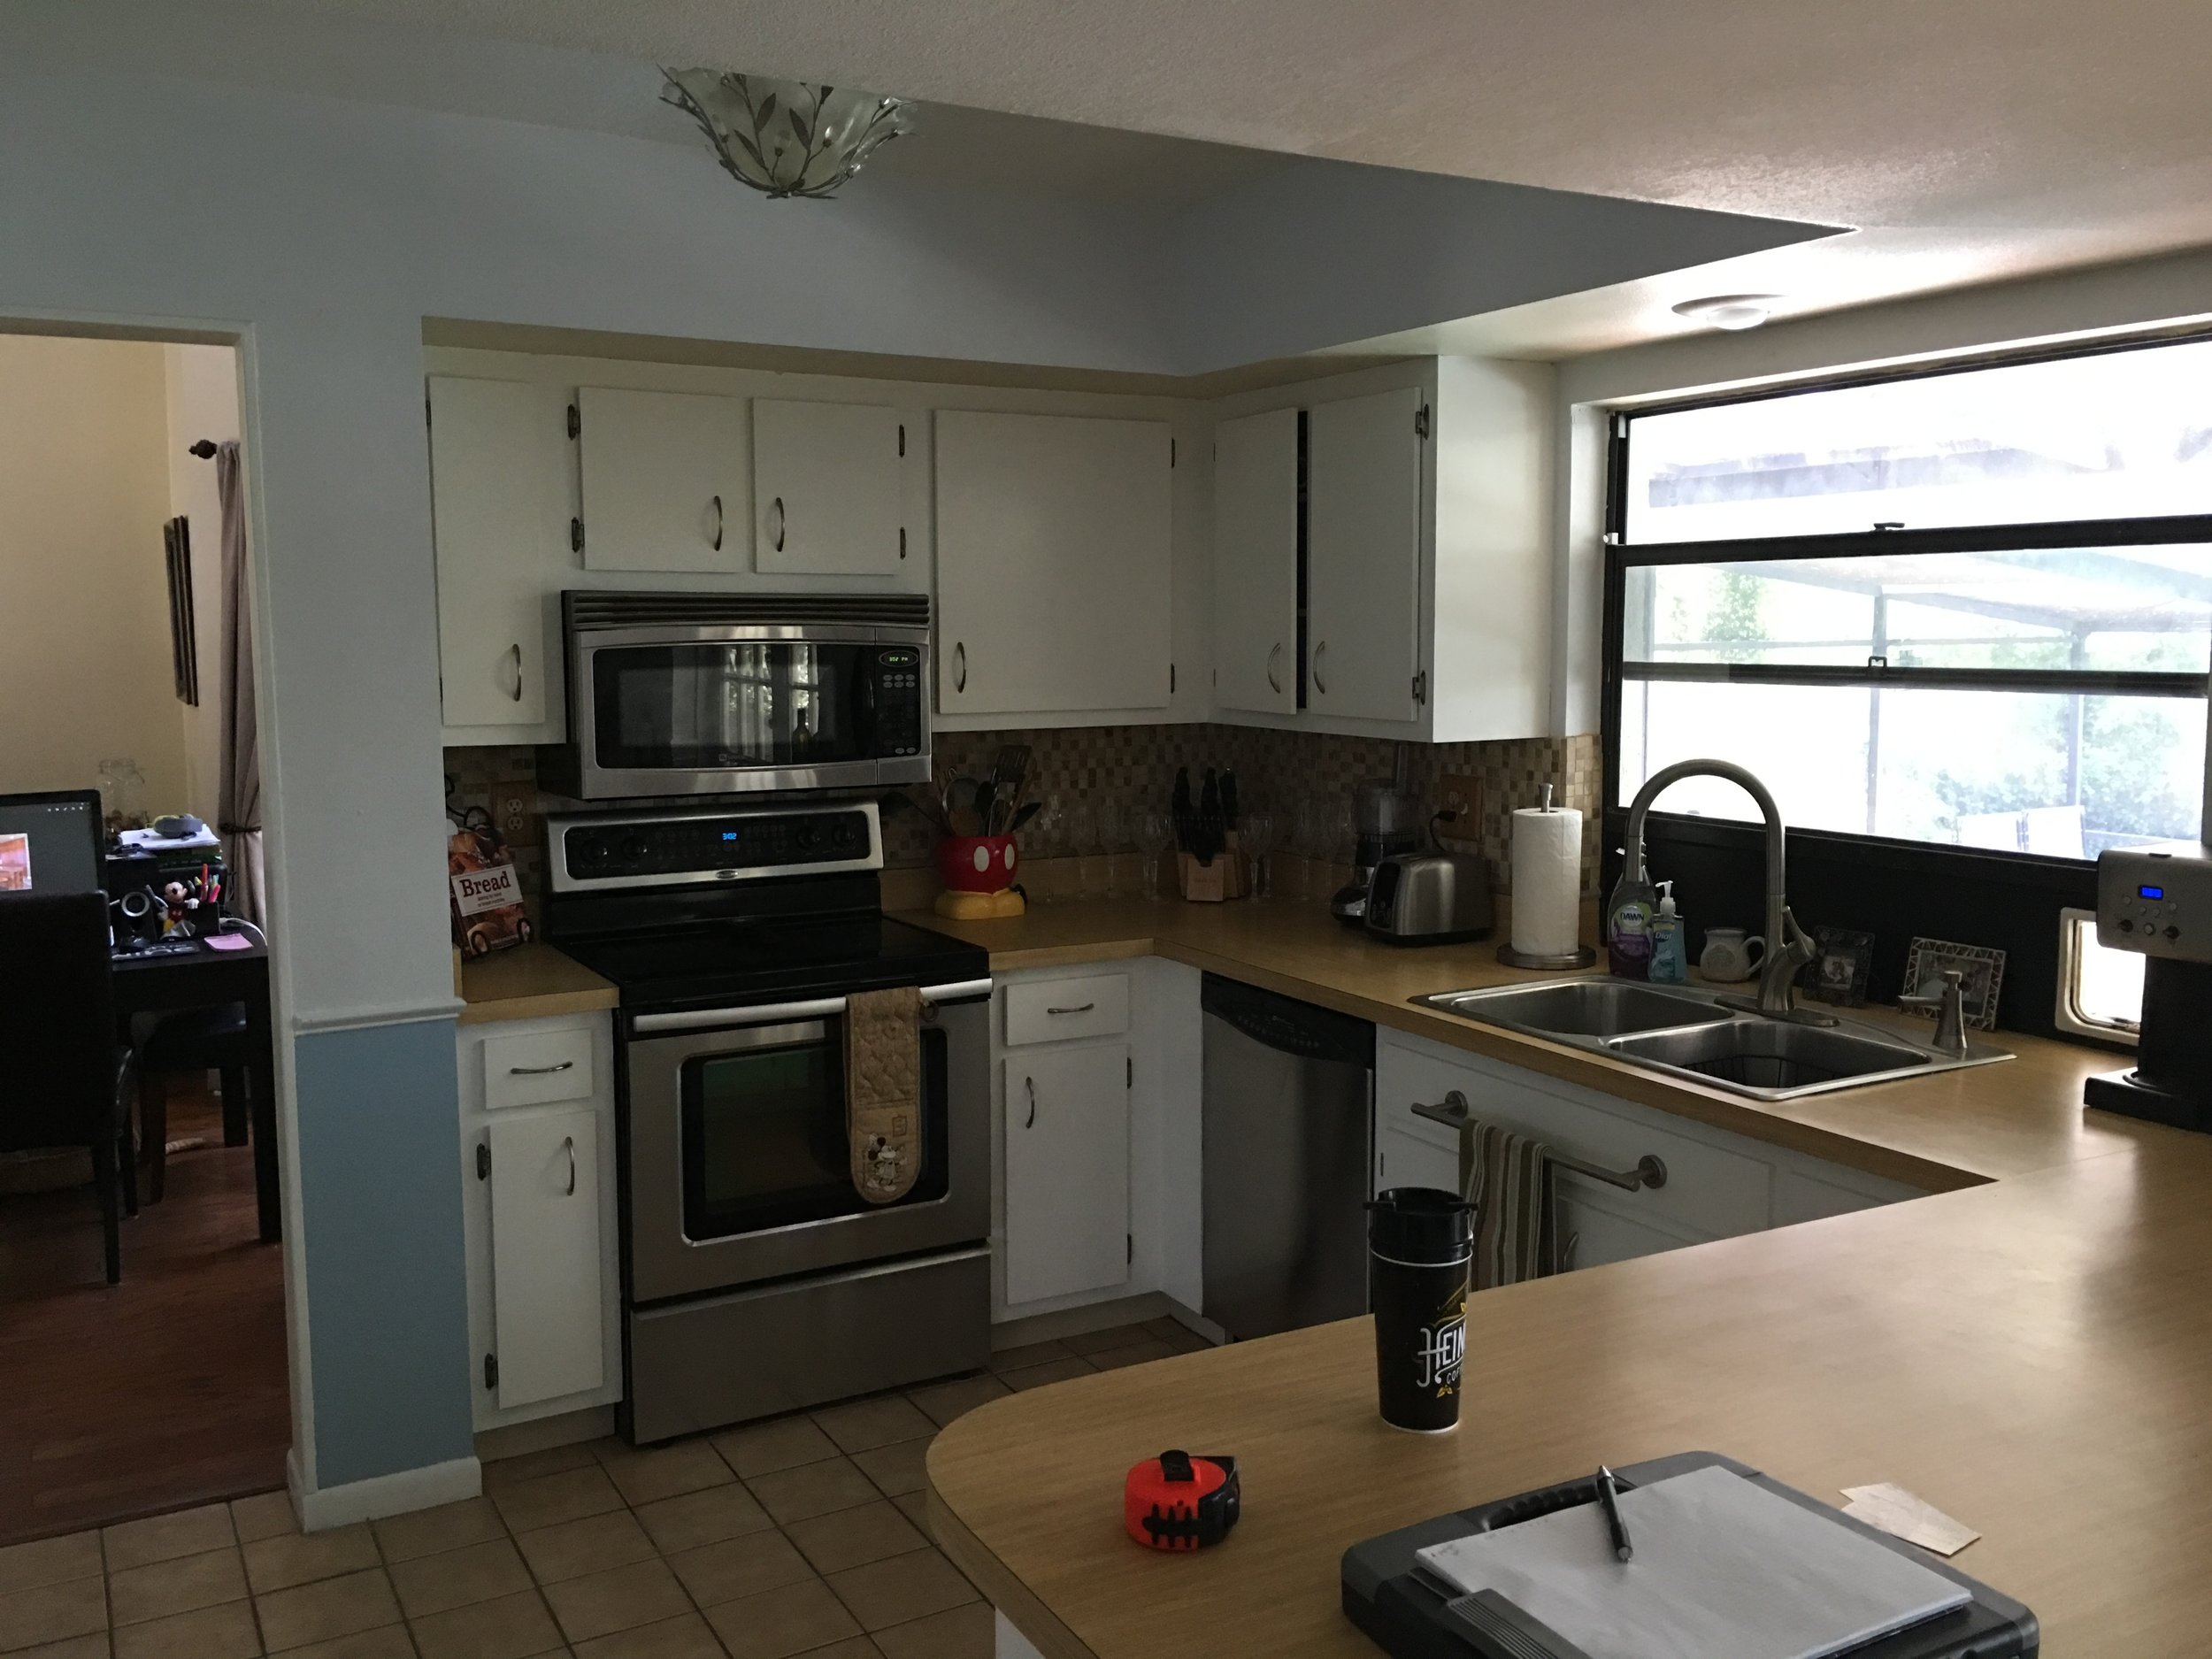 Before: Dated kitchen with updated appliances